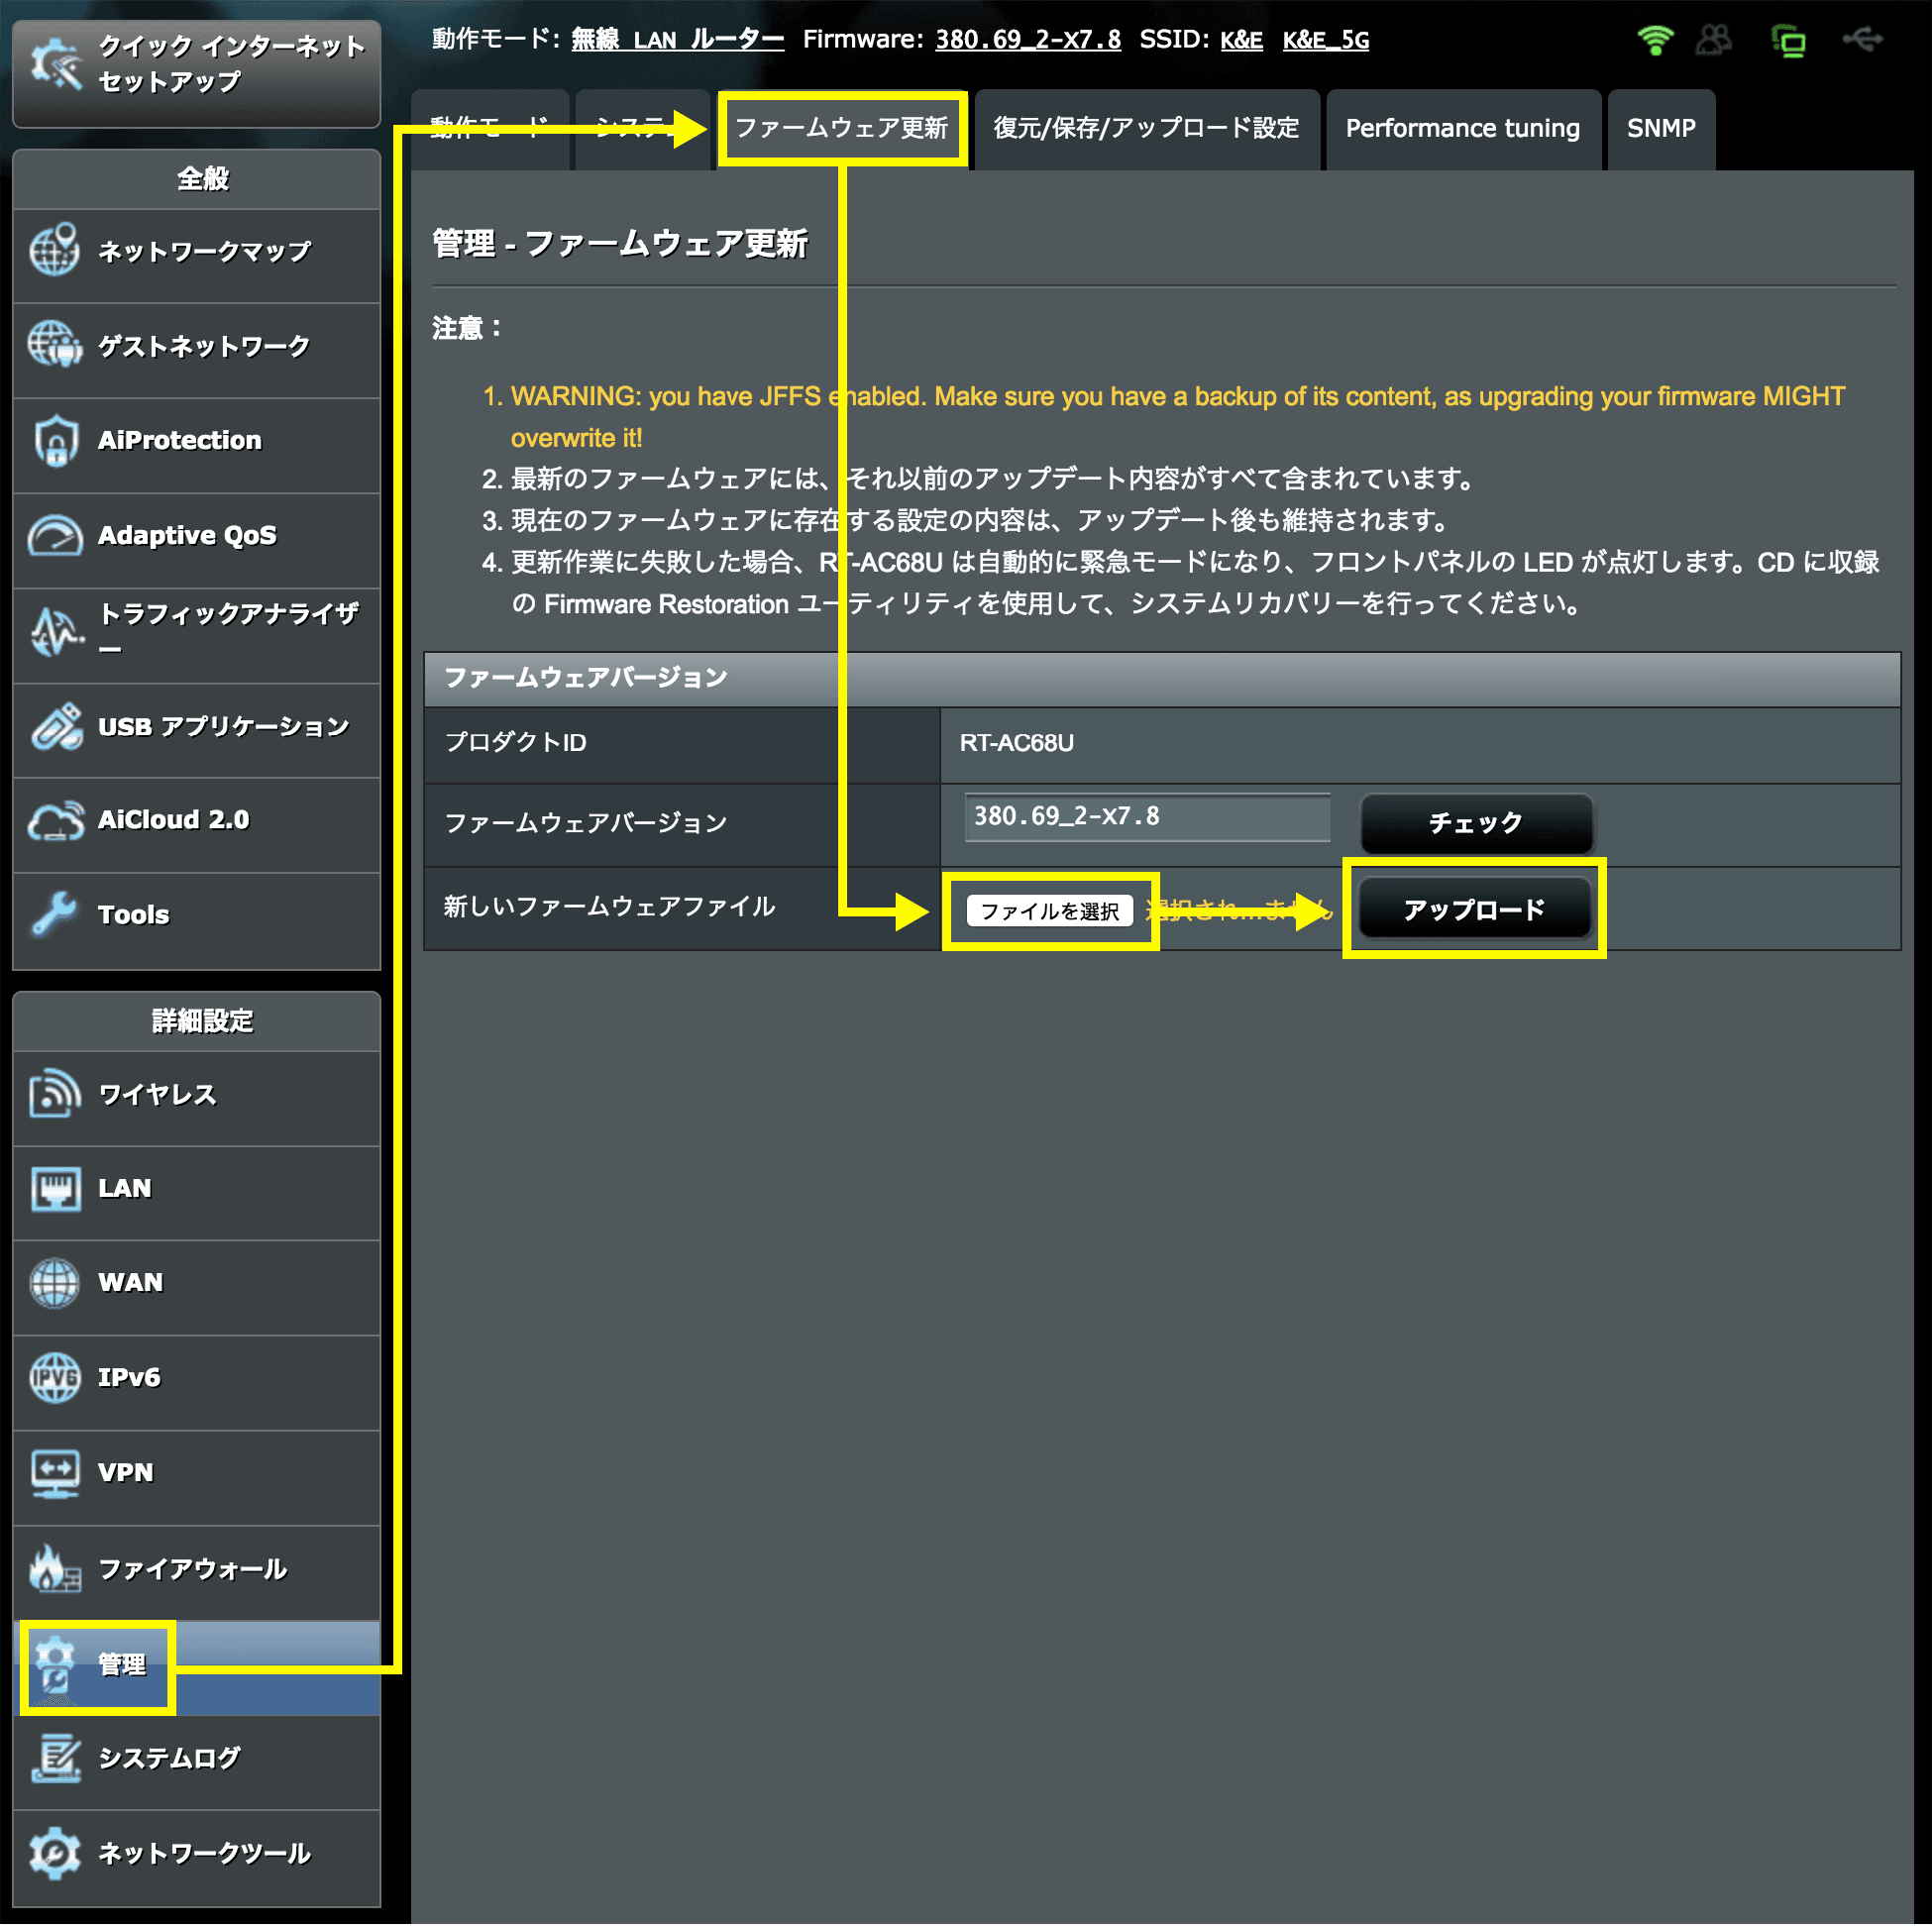 Merlin (Koolshare Modified Rom) の設定方法